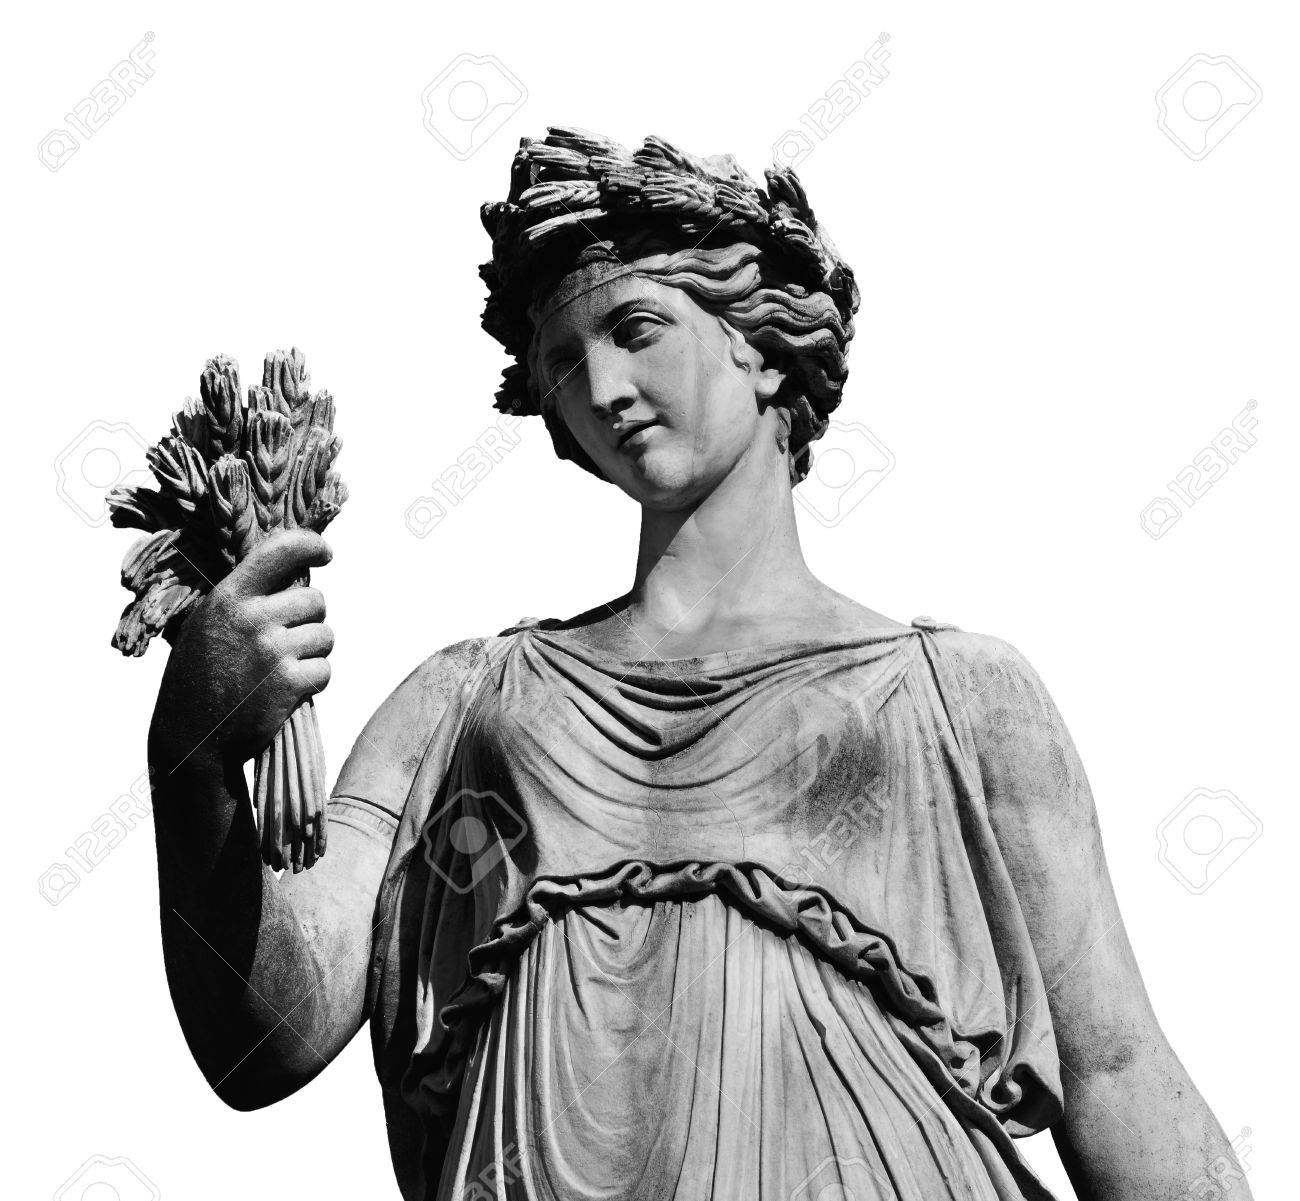 Ancient Roman Or Greek Neoclassical Statue Holding Wheat In Rome 1300x1201